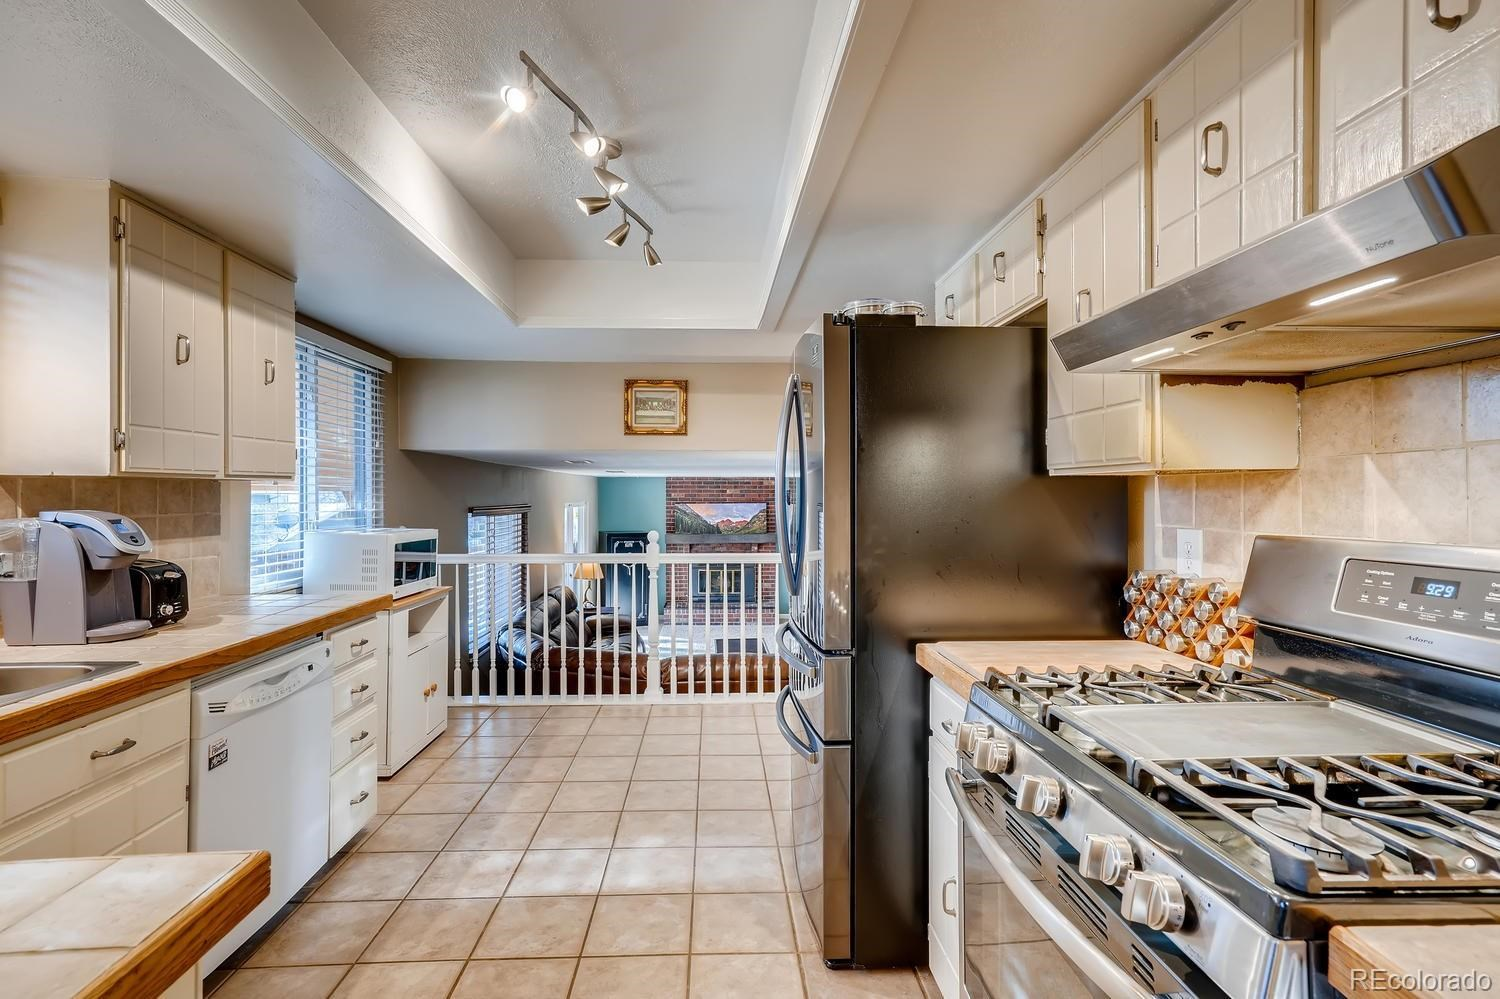 MLS# 8480812 - 8 - 12630 W 67th Place, Arvada, CO 80004